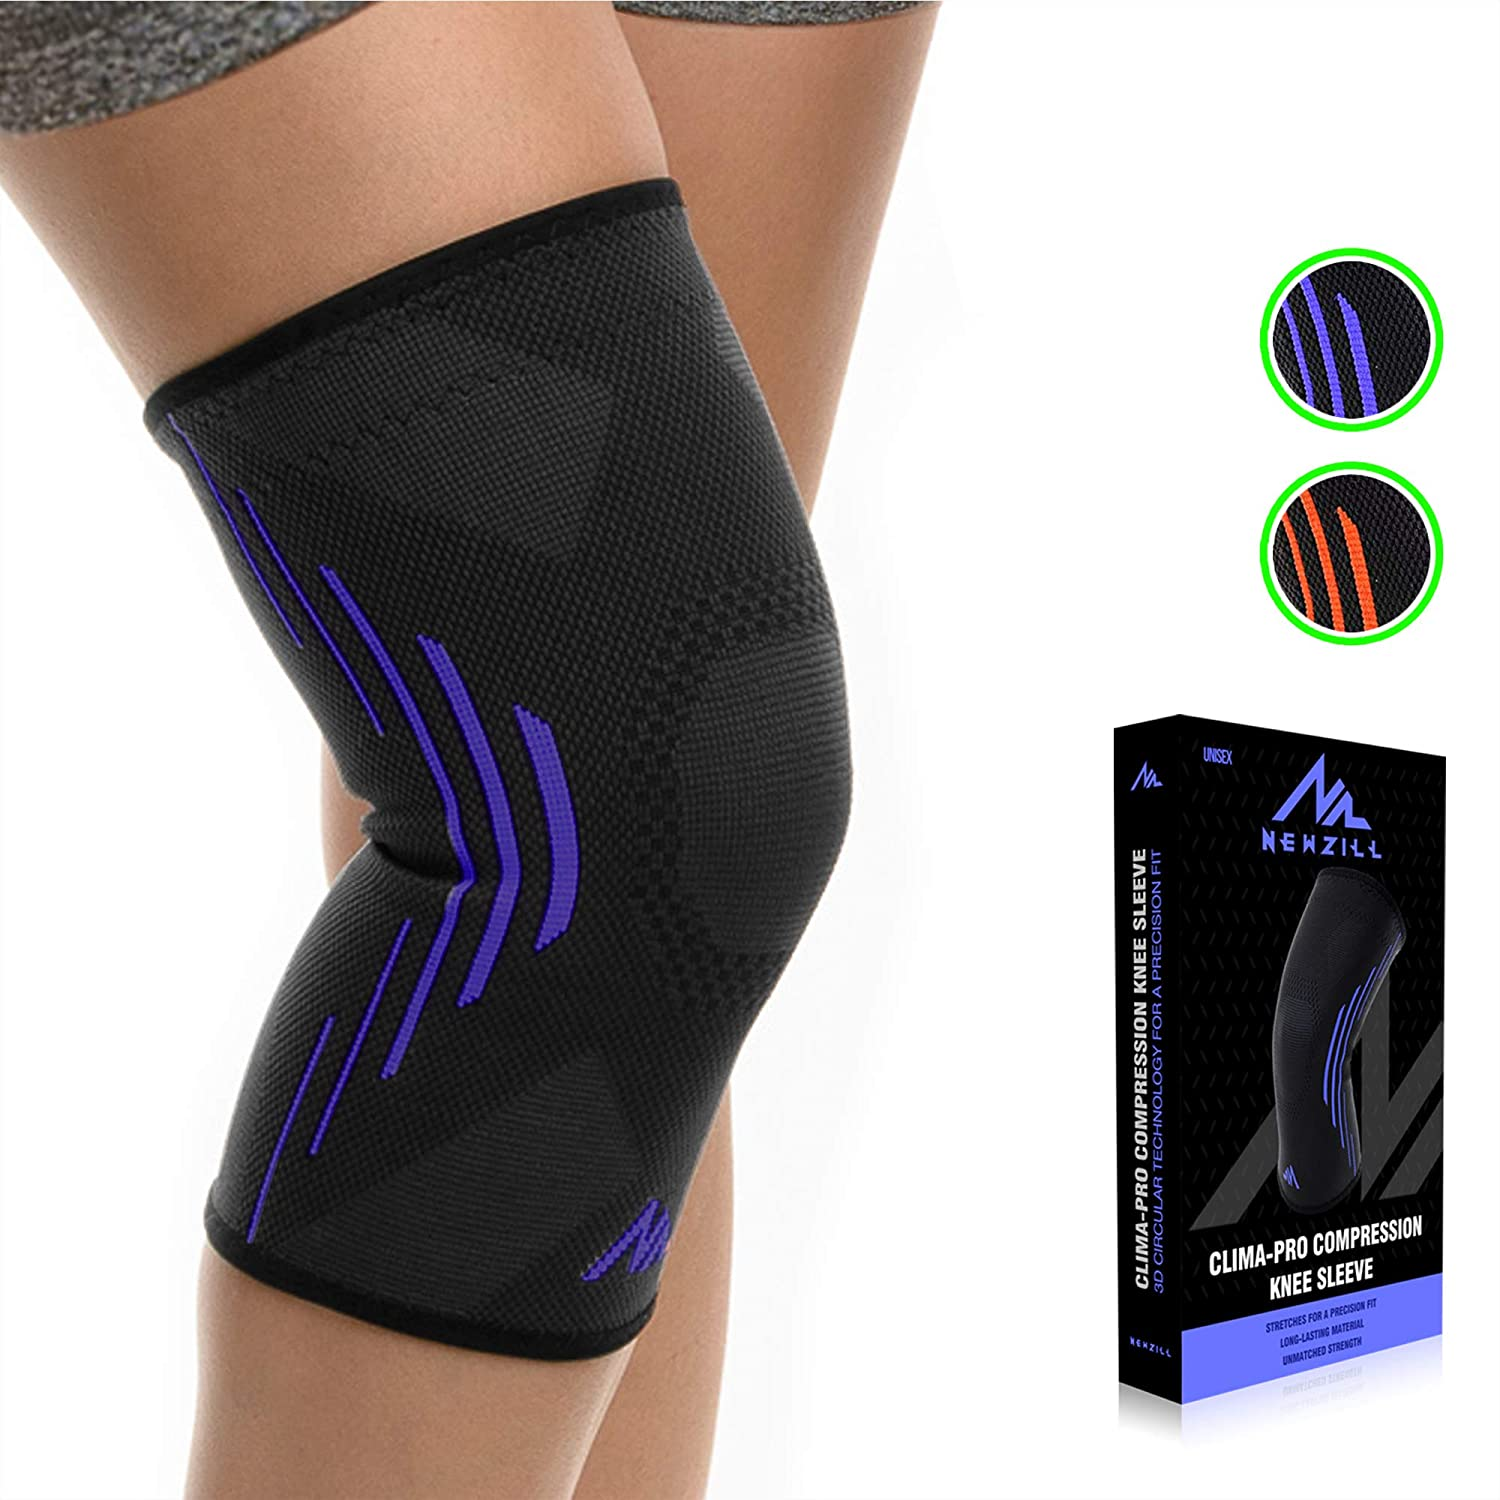 916465862a NEWZILL Compression Knee Brace for Knee Pain - Braces and Supports Knee for  Pain Relief, Meniscus Tear, Arthritis, Injury, Running, Joint Pain, ...